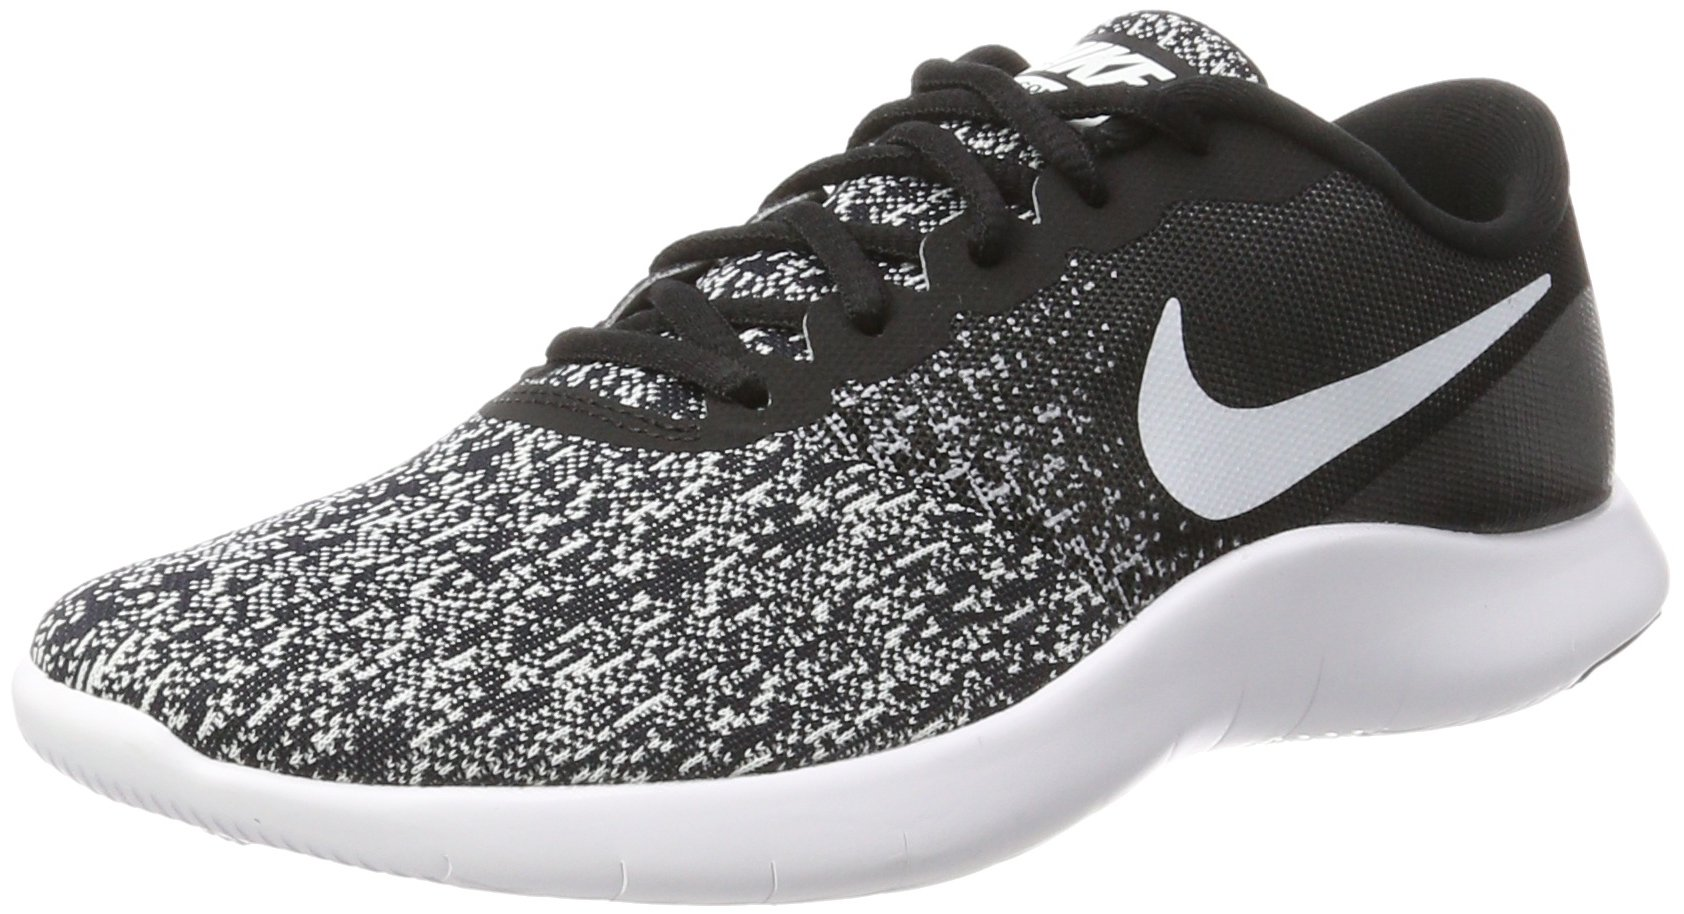 NIKE Men's Flex Contact Running Shoe, Black White 14